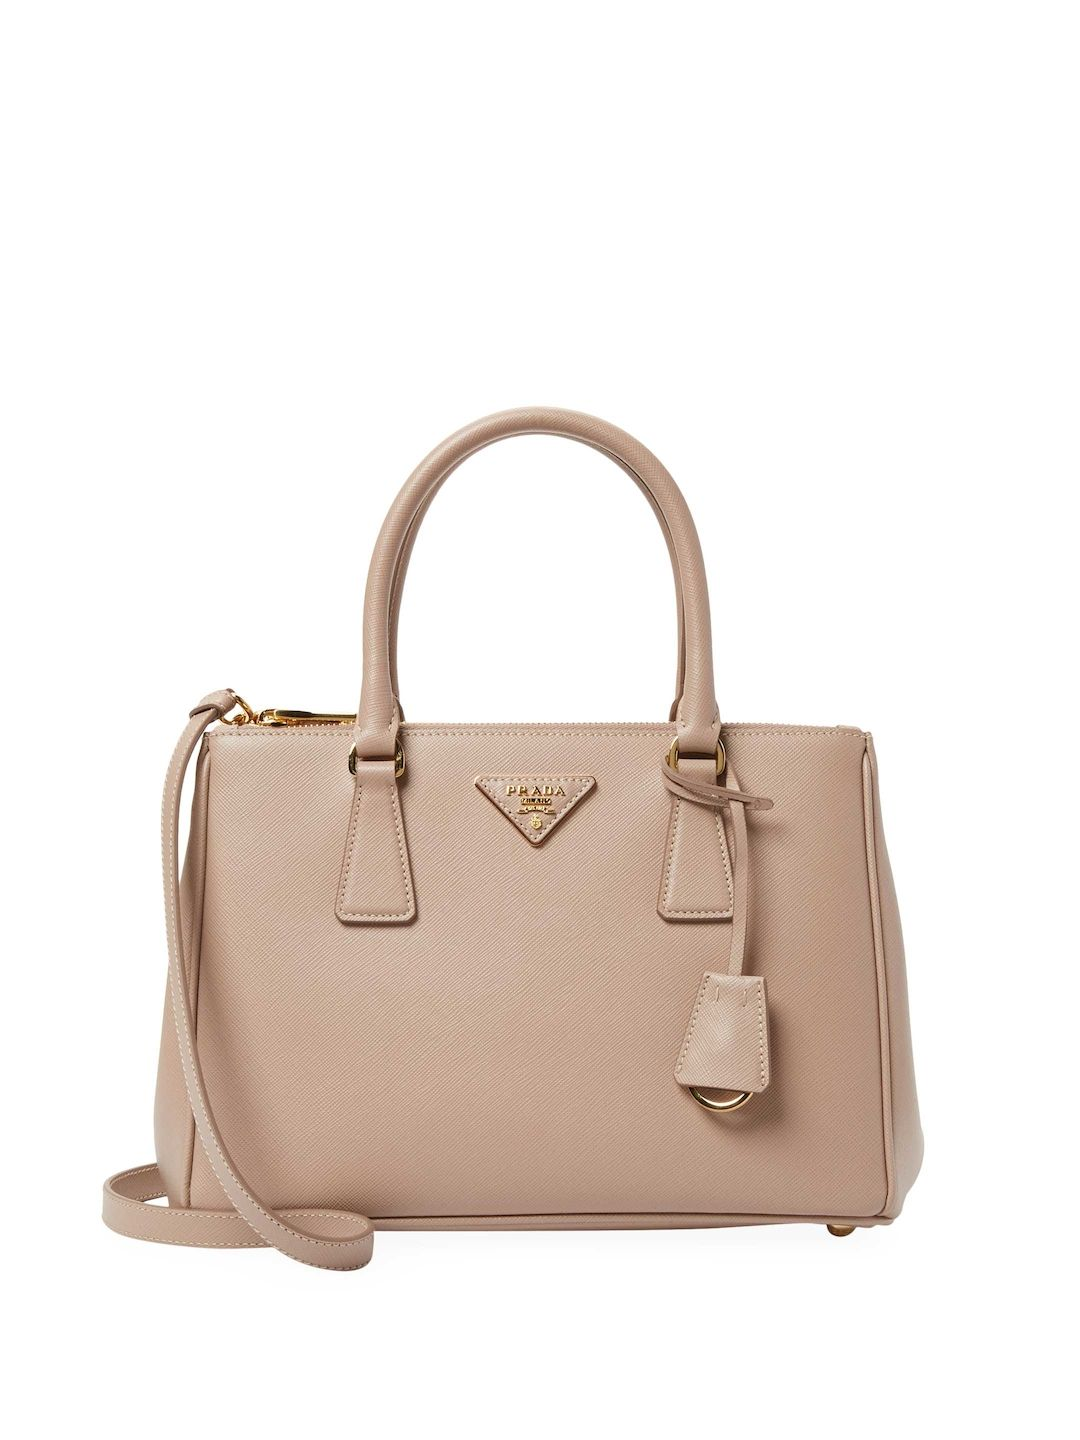 1b28302368a1 PRADA GALLERIA DOUBLE ZIP SMALL SAFFIANO LEATHER TOTE. #prada #bags #shoulder  bags #hand bags #leather #tote #lining #